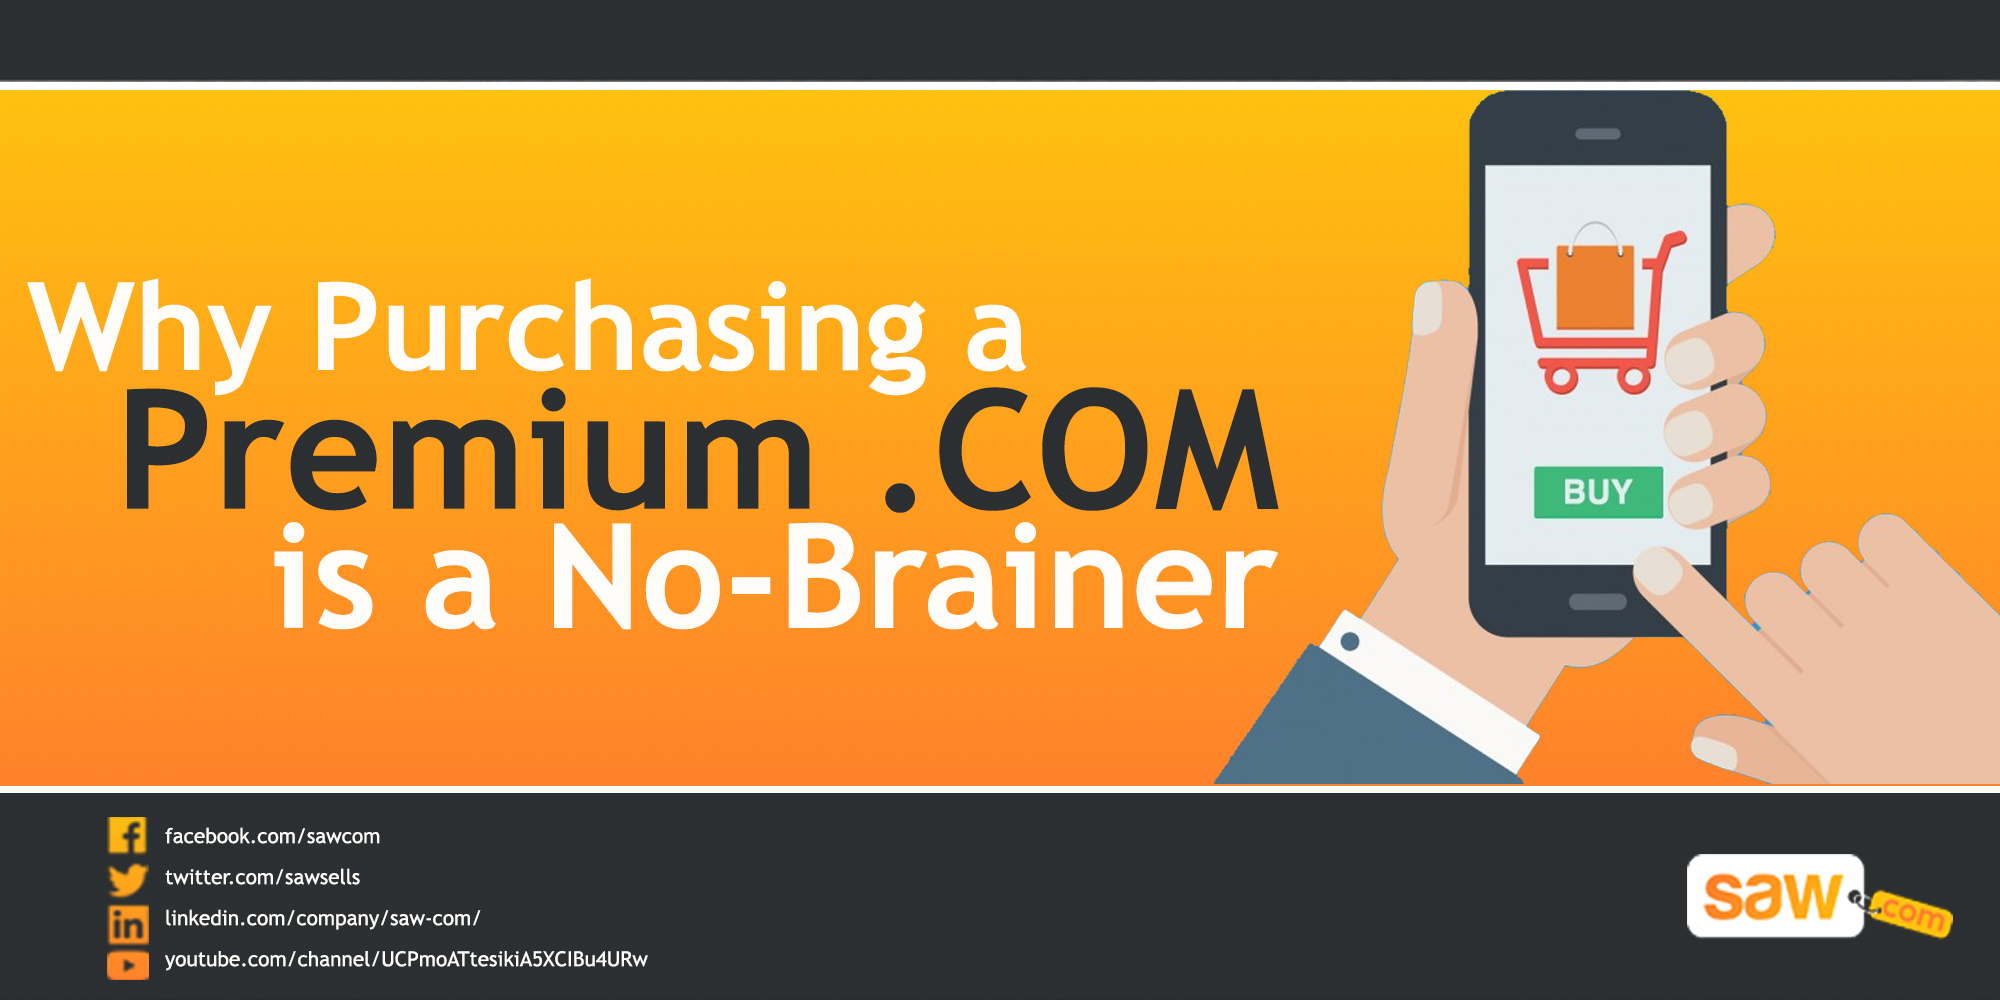 Why Purchasing a Premium .Com is a No-Brainer